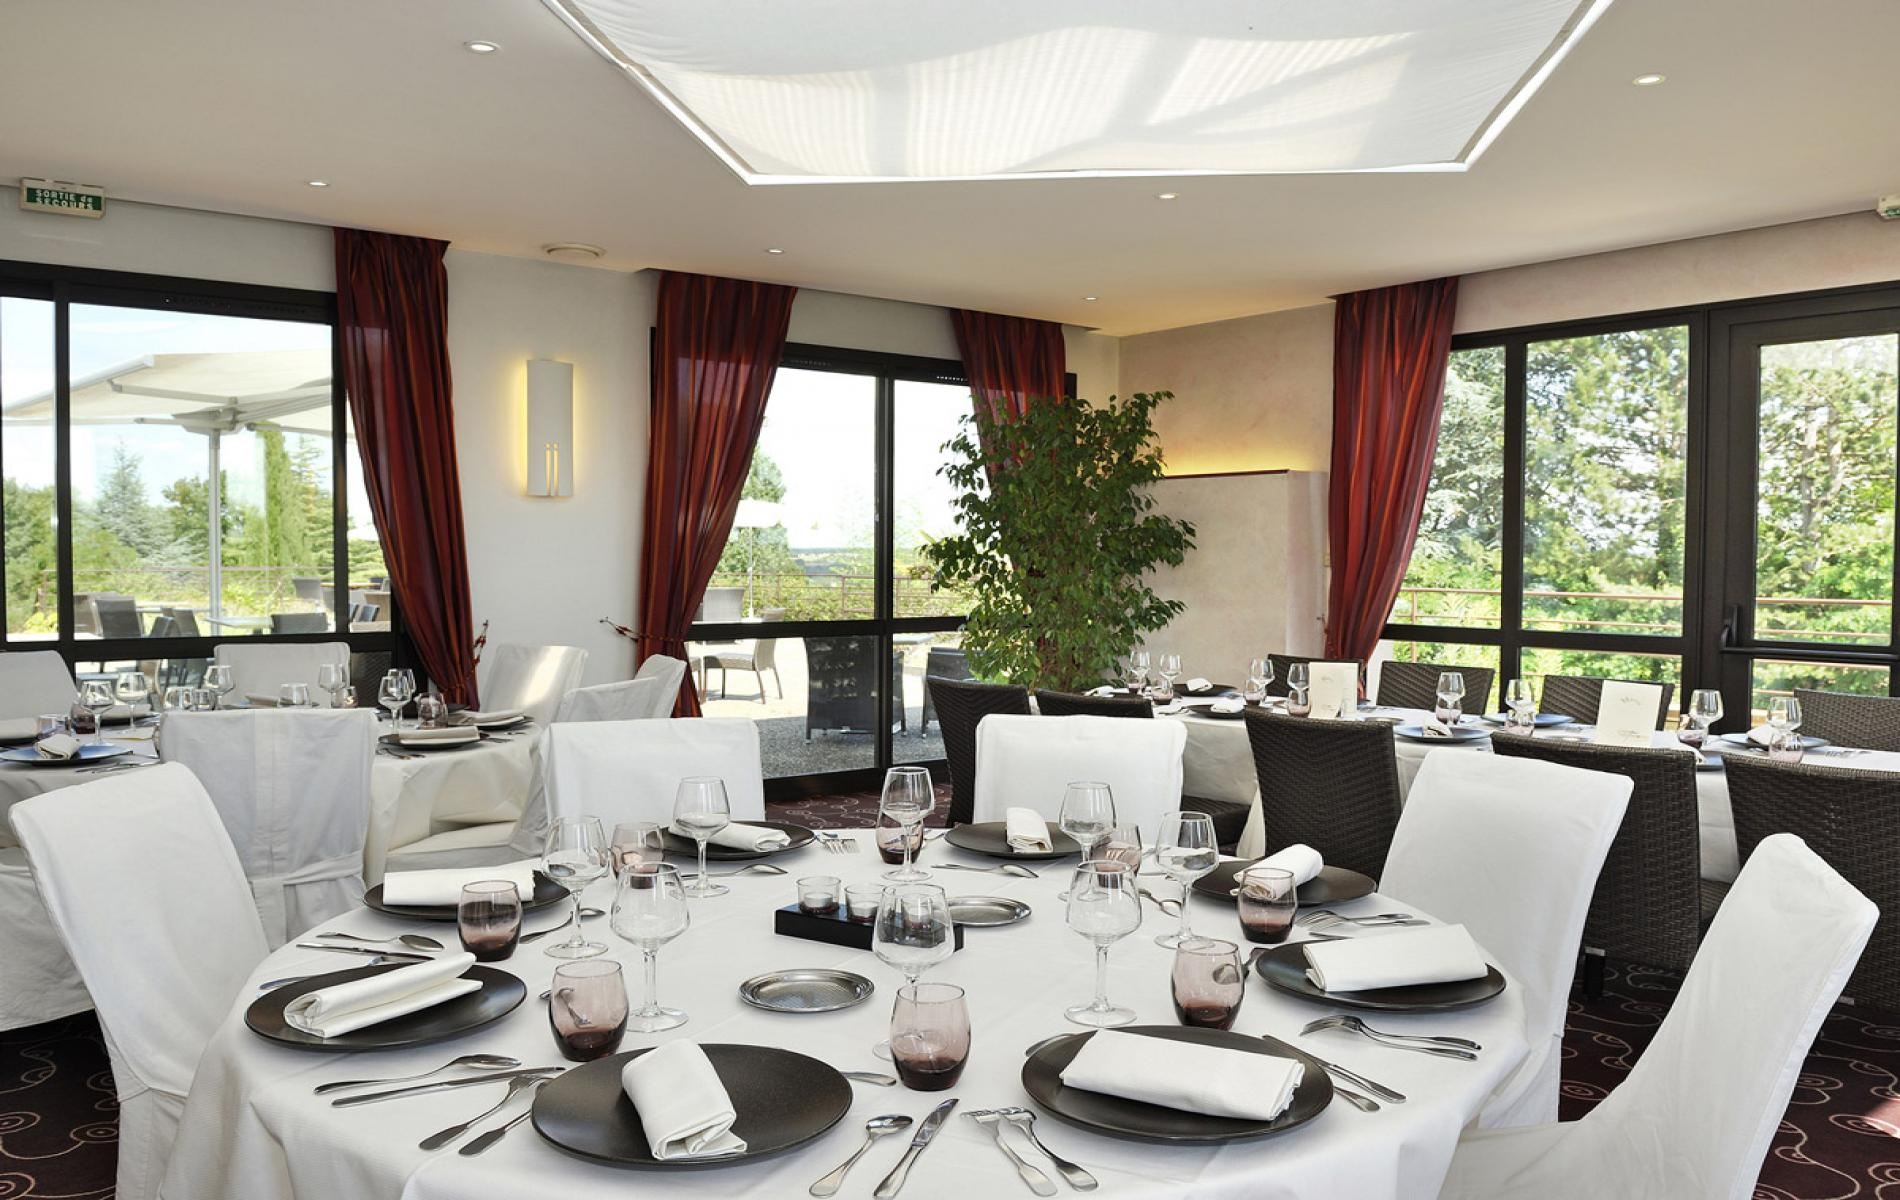 Les Terrasses, restaurant of the hotel Luccotel, Loches, Touraine